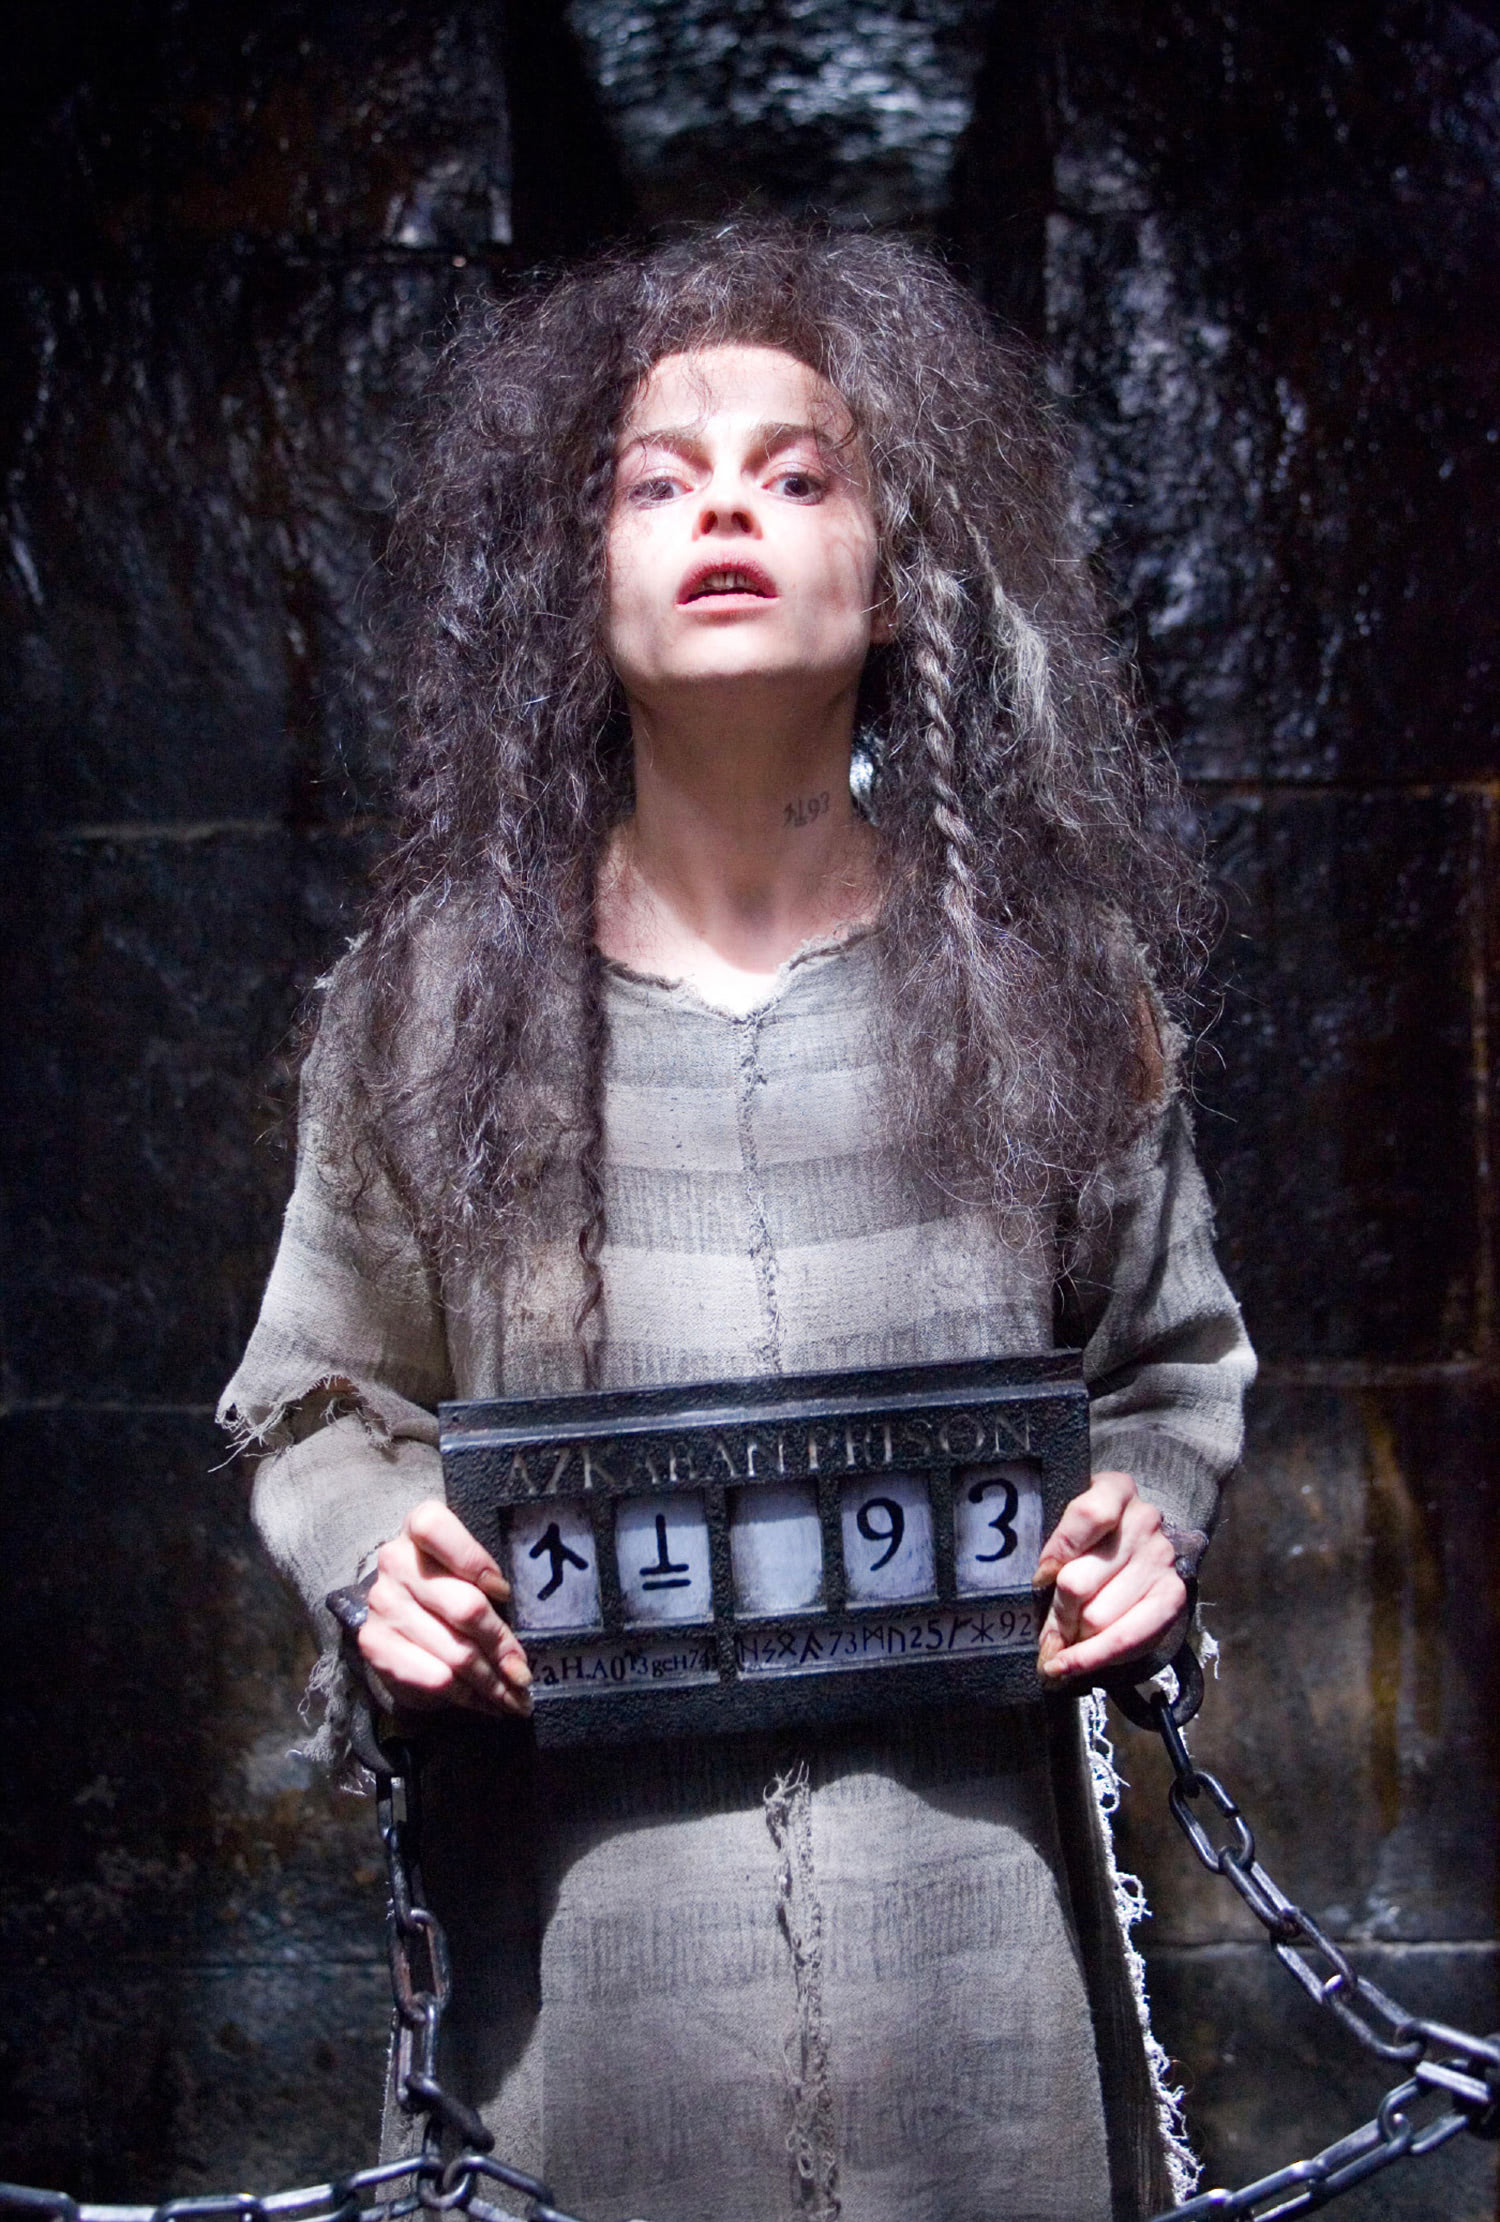 Bellatrix Lestrange in Azkaban